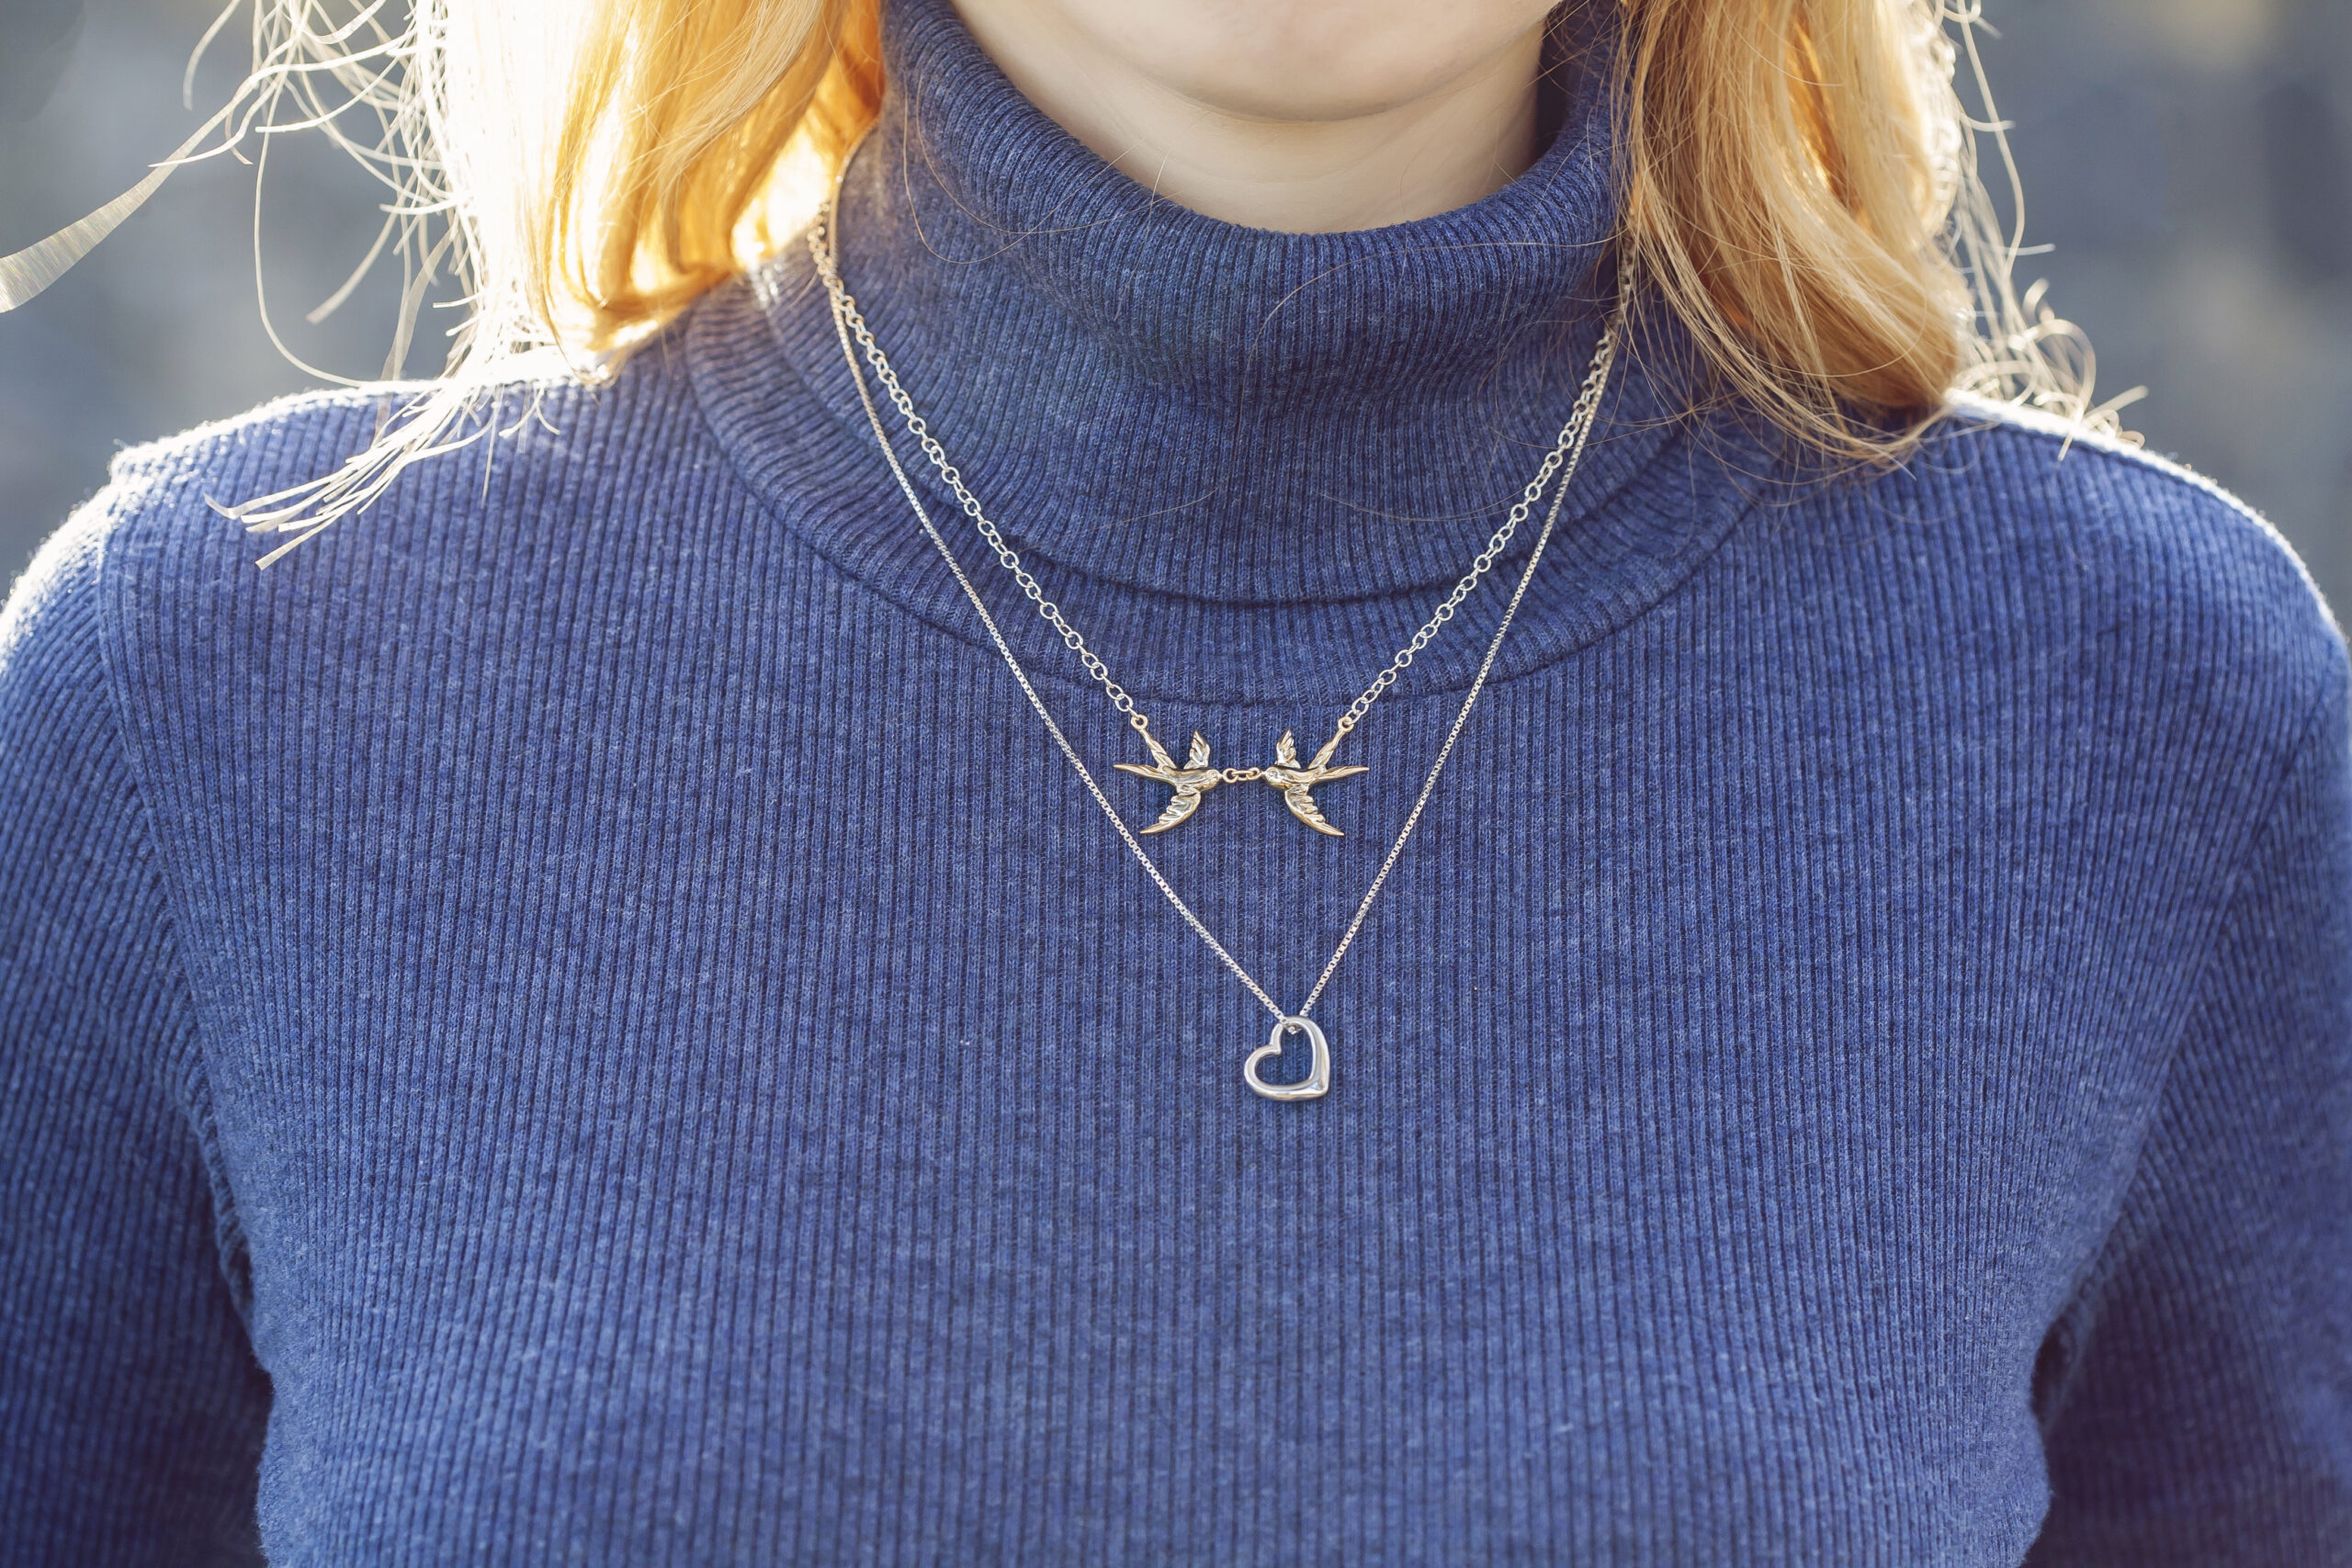 How To Wear Gold and Silver Jewelry Together